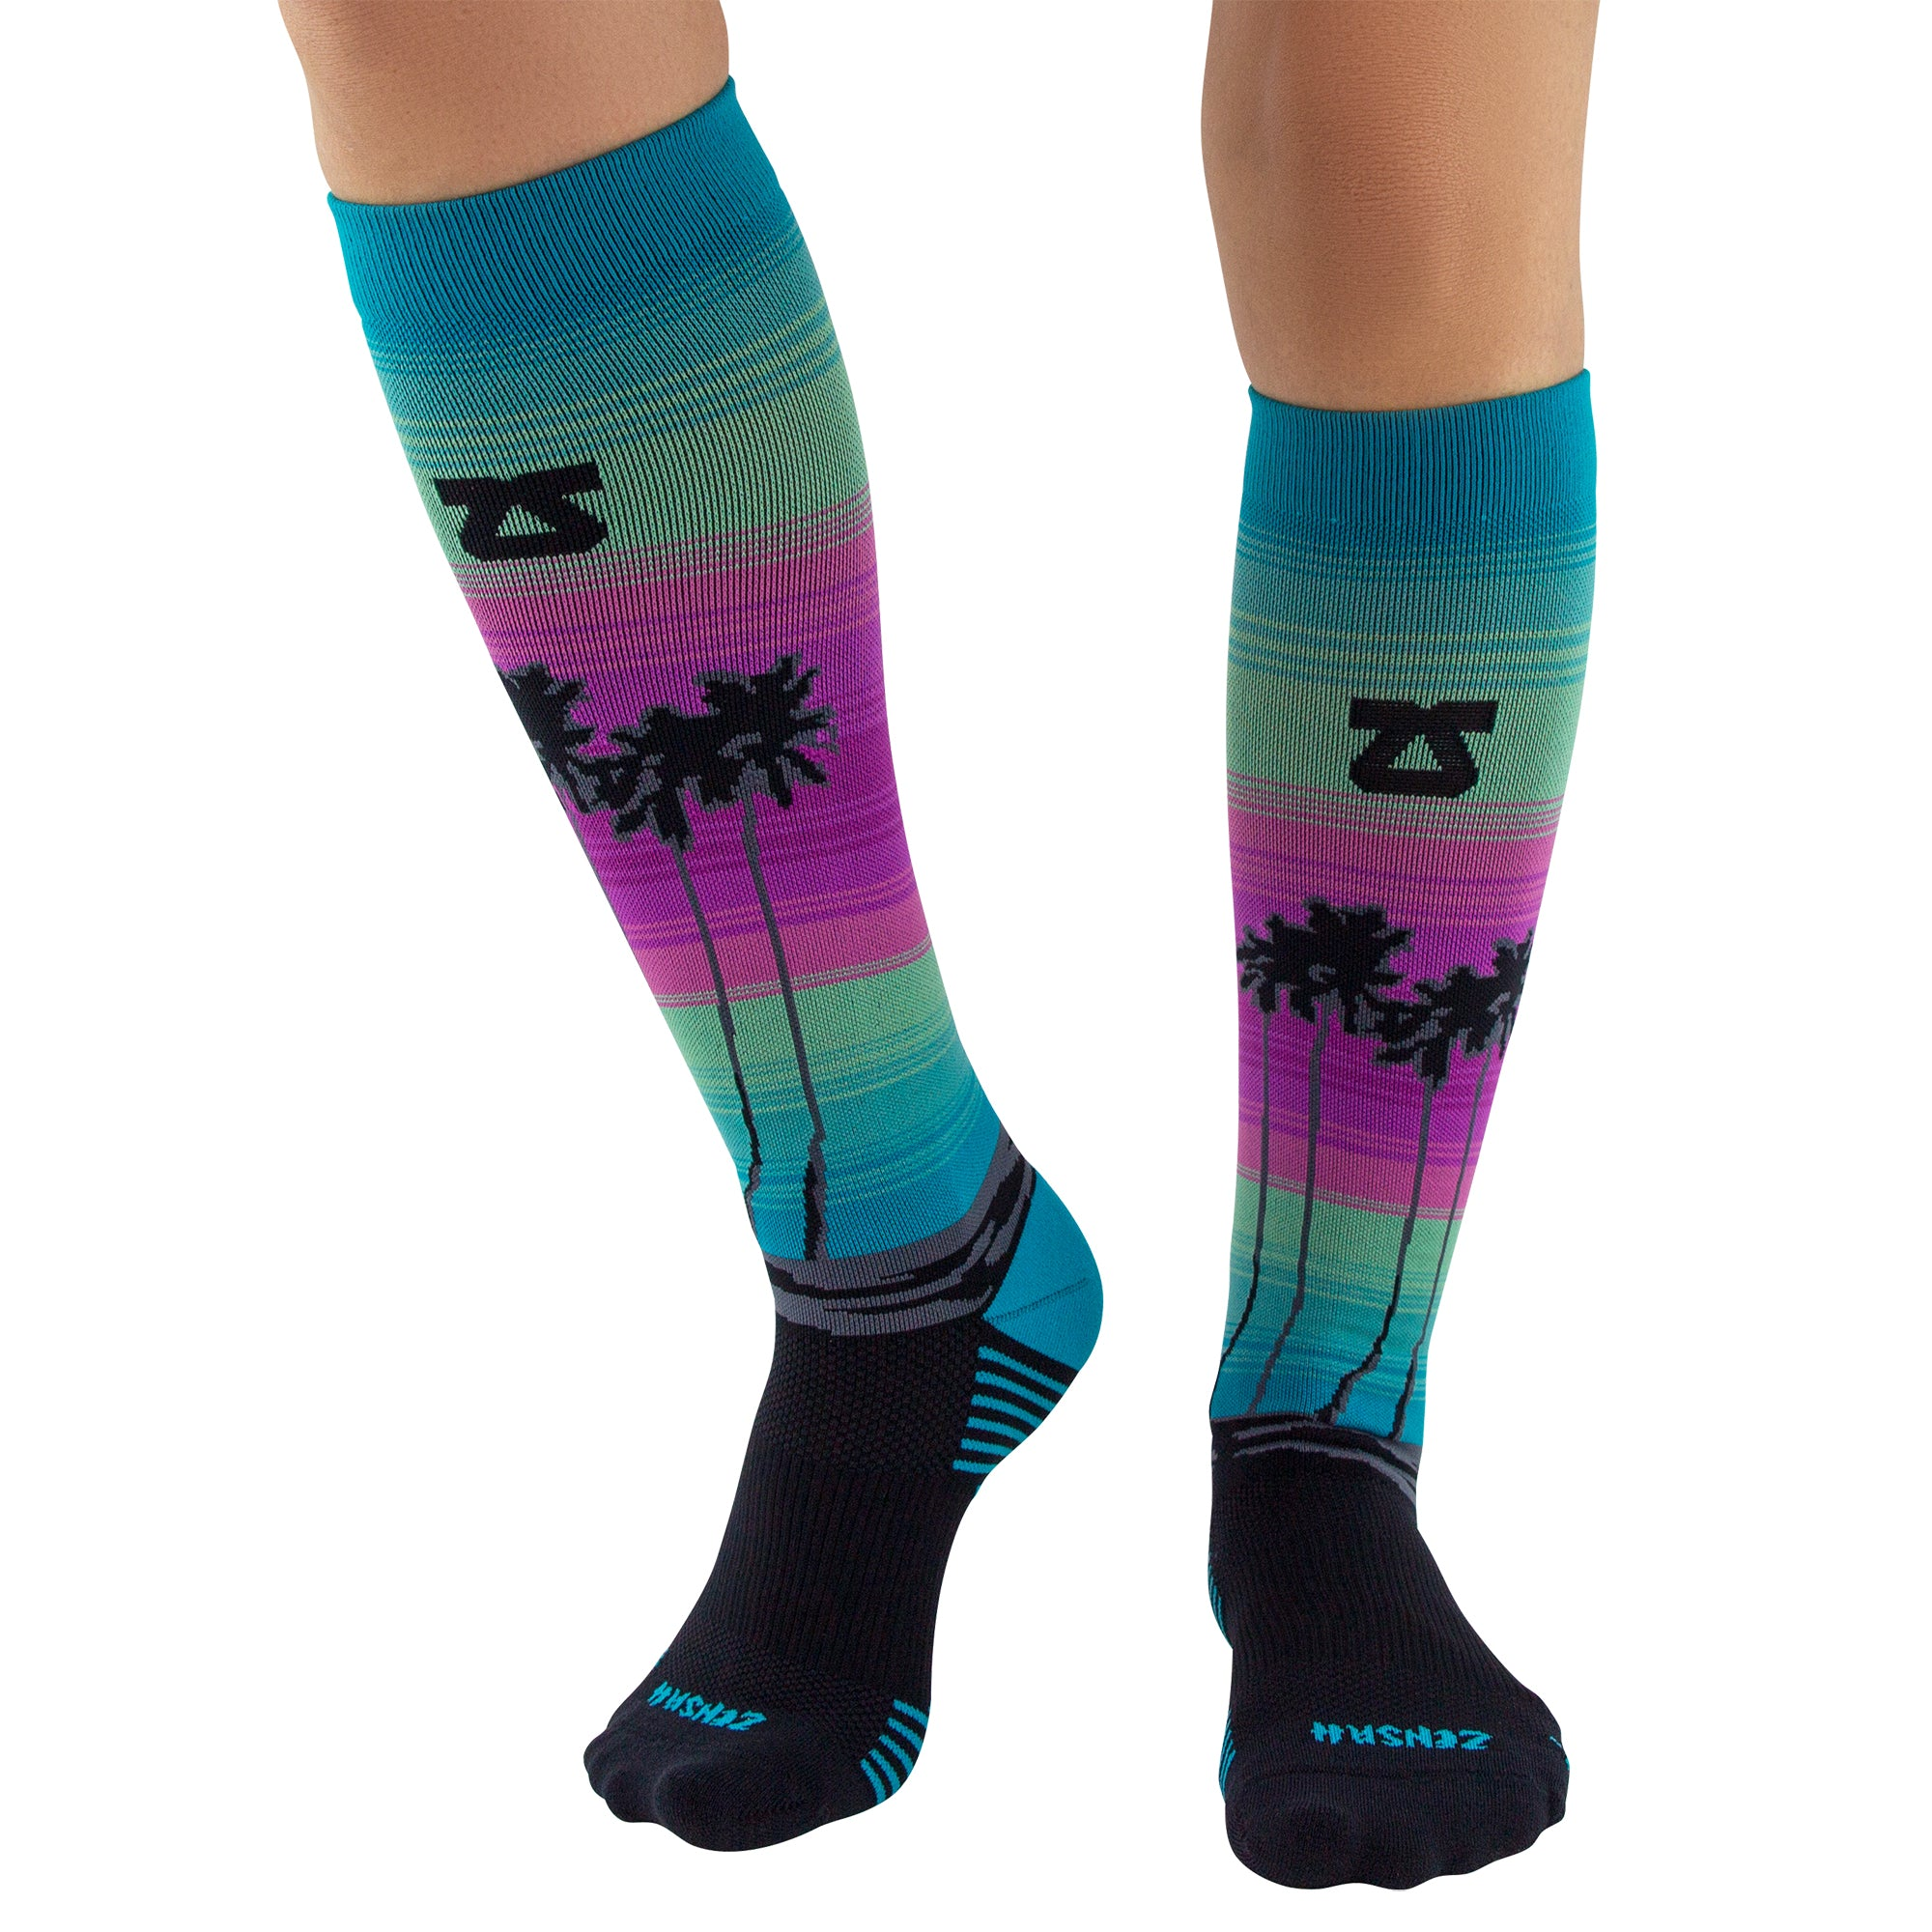 Sock of the Month Compression Socks - Miami Palm